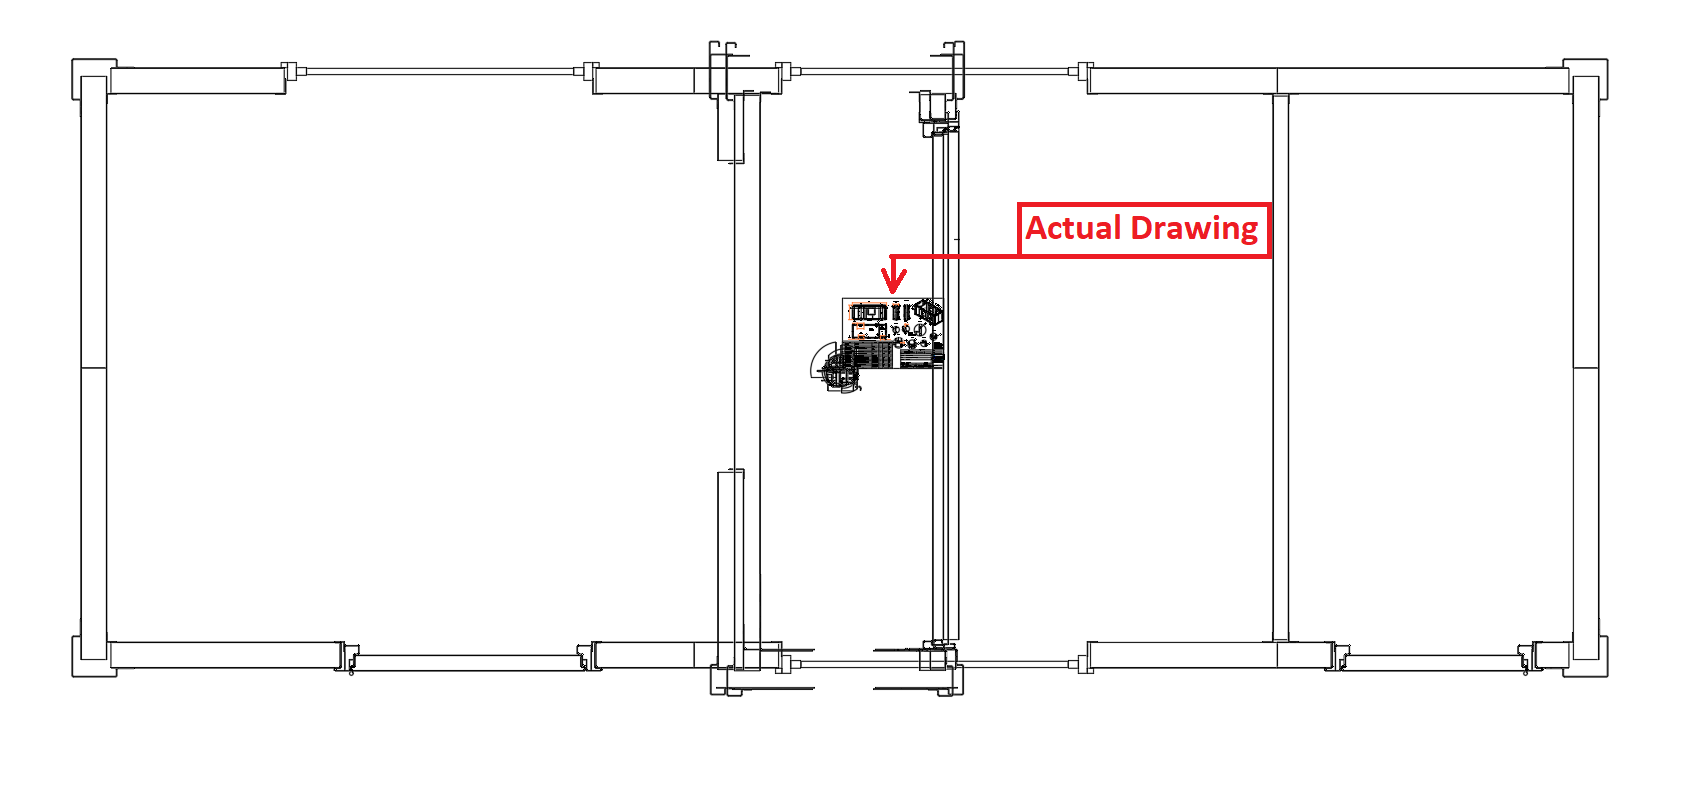 Unwanted lines on Autocad DWG save copy as! - Autodesk Community